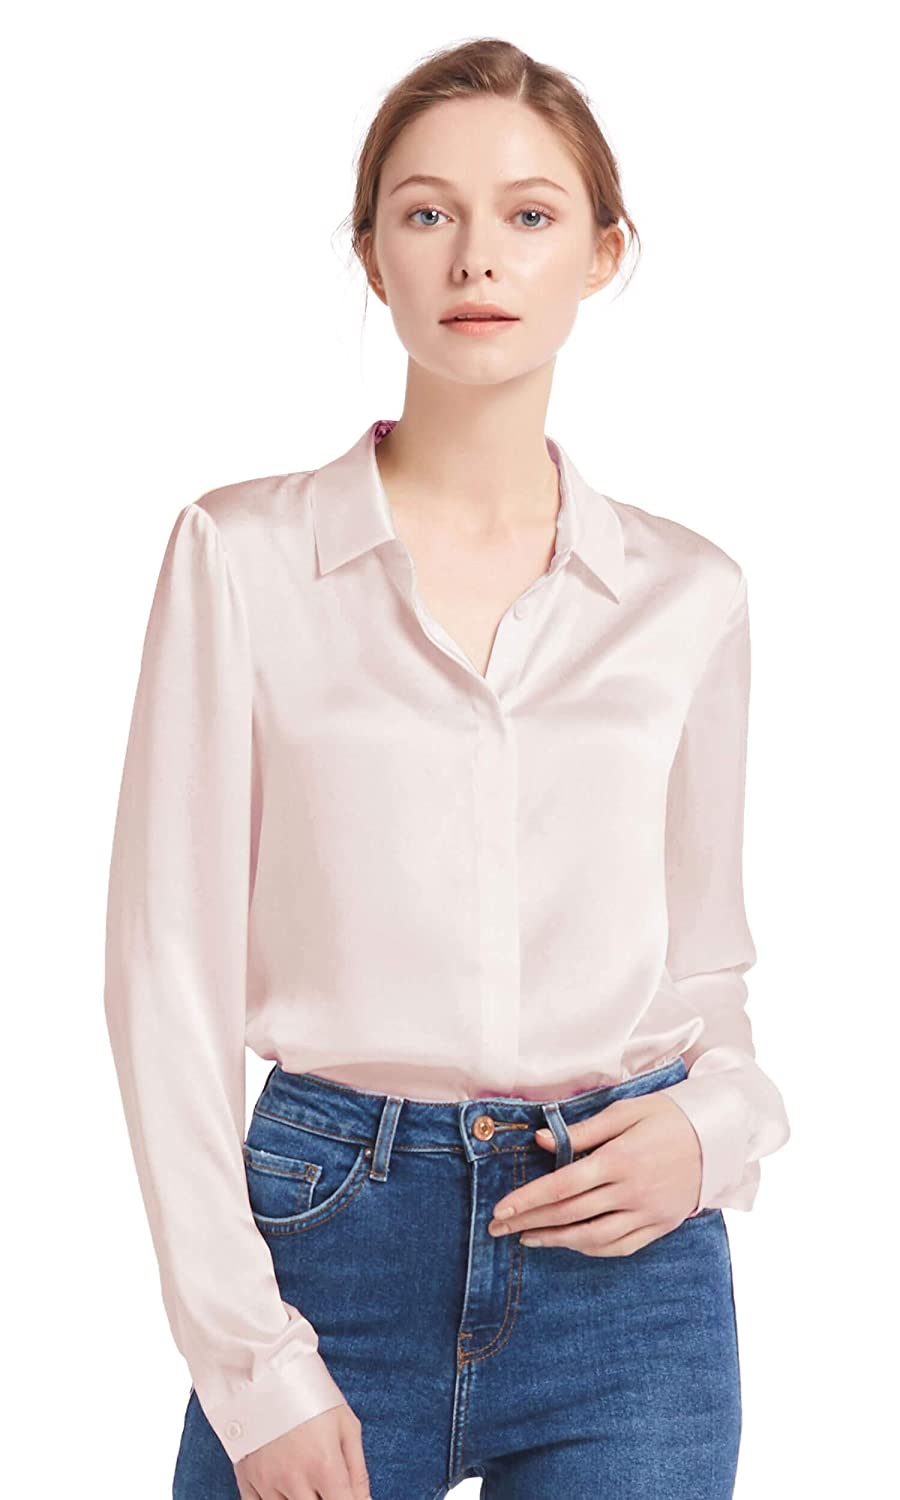 Light Beige LilySilk Women's Silk Shirt 22 Momme 100% Pure Silk Button Down Tops Long Sleeves